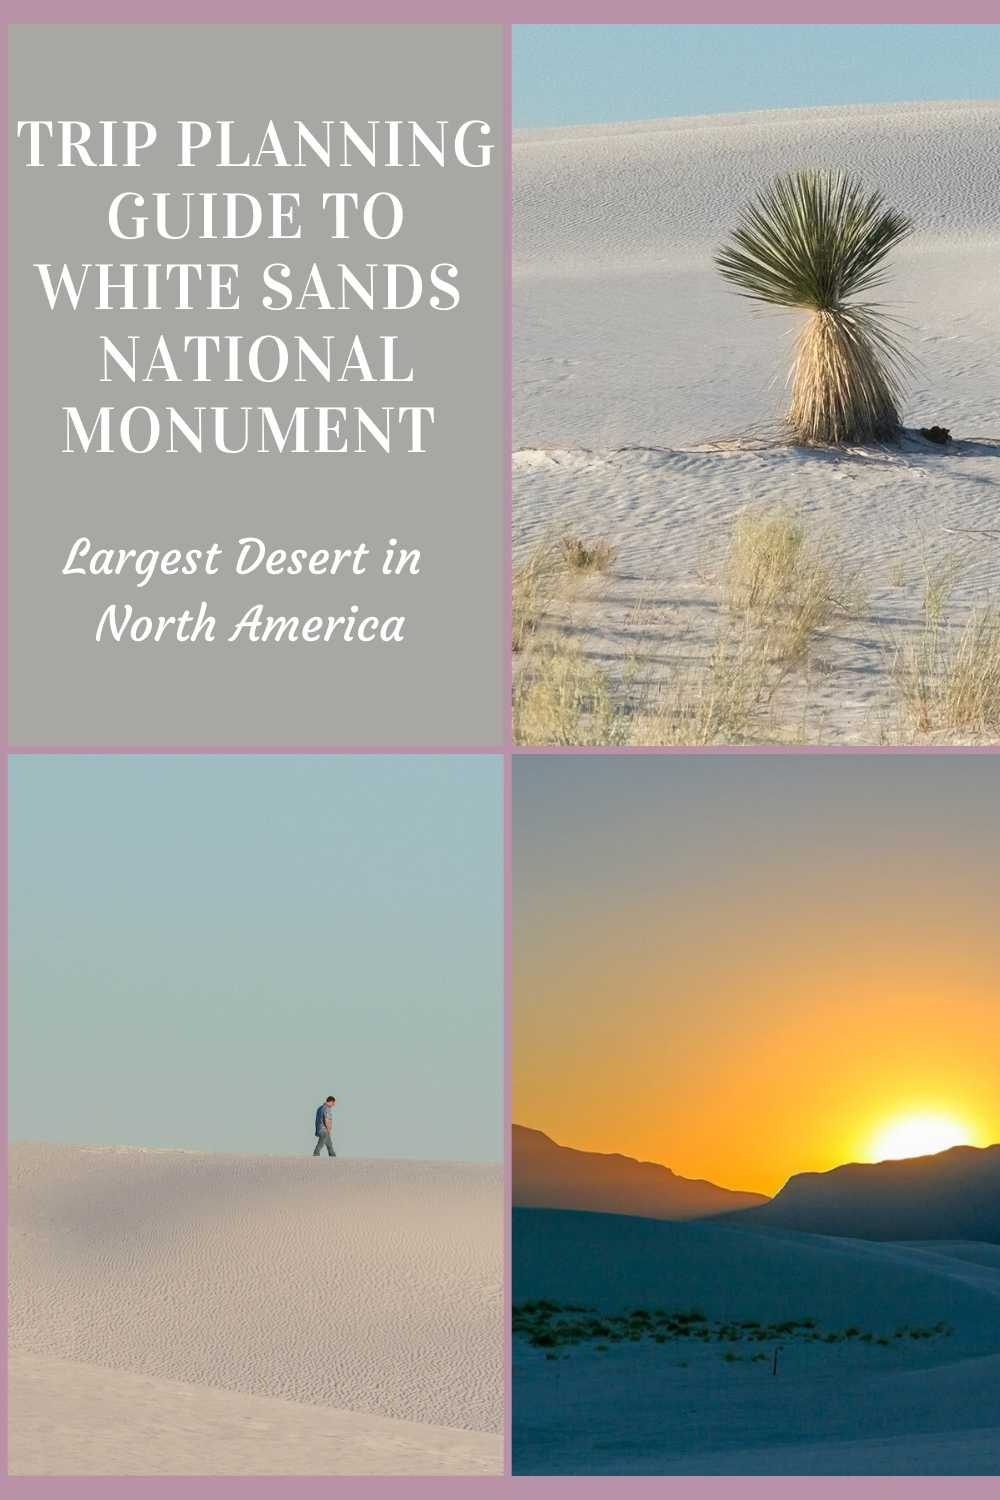 Trip planning guide to White Sands, New Mexico